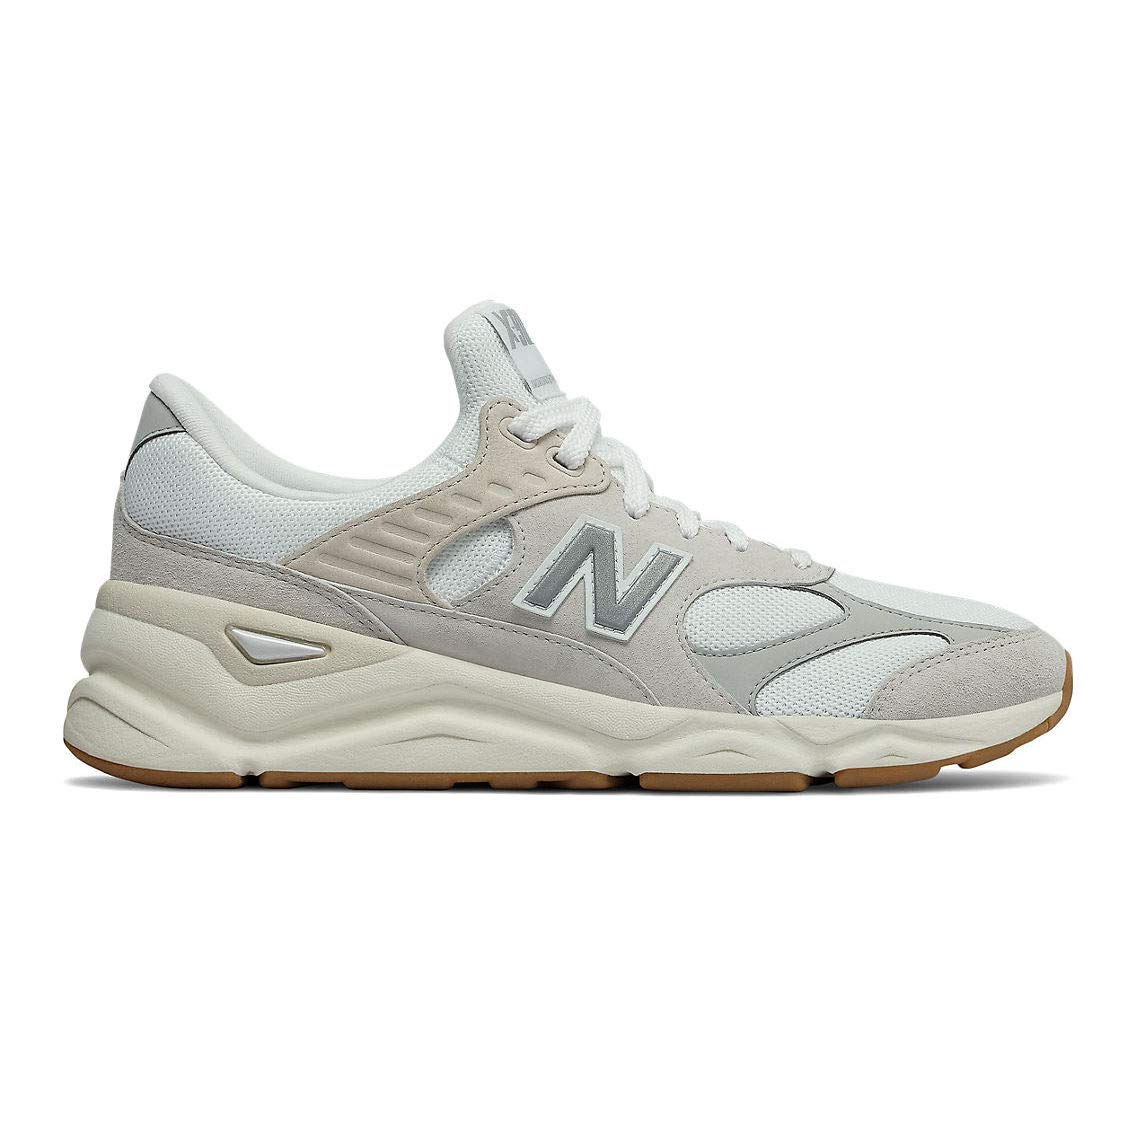 New New New Balance MSX90, RCB Other beige, 12 d53c5d